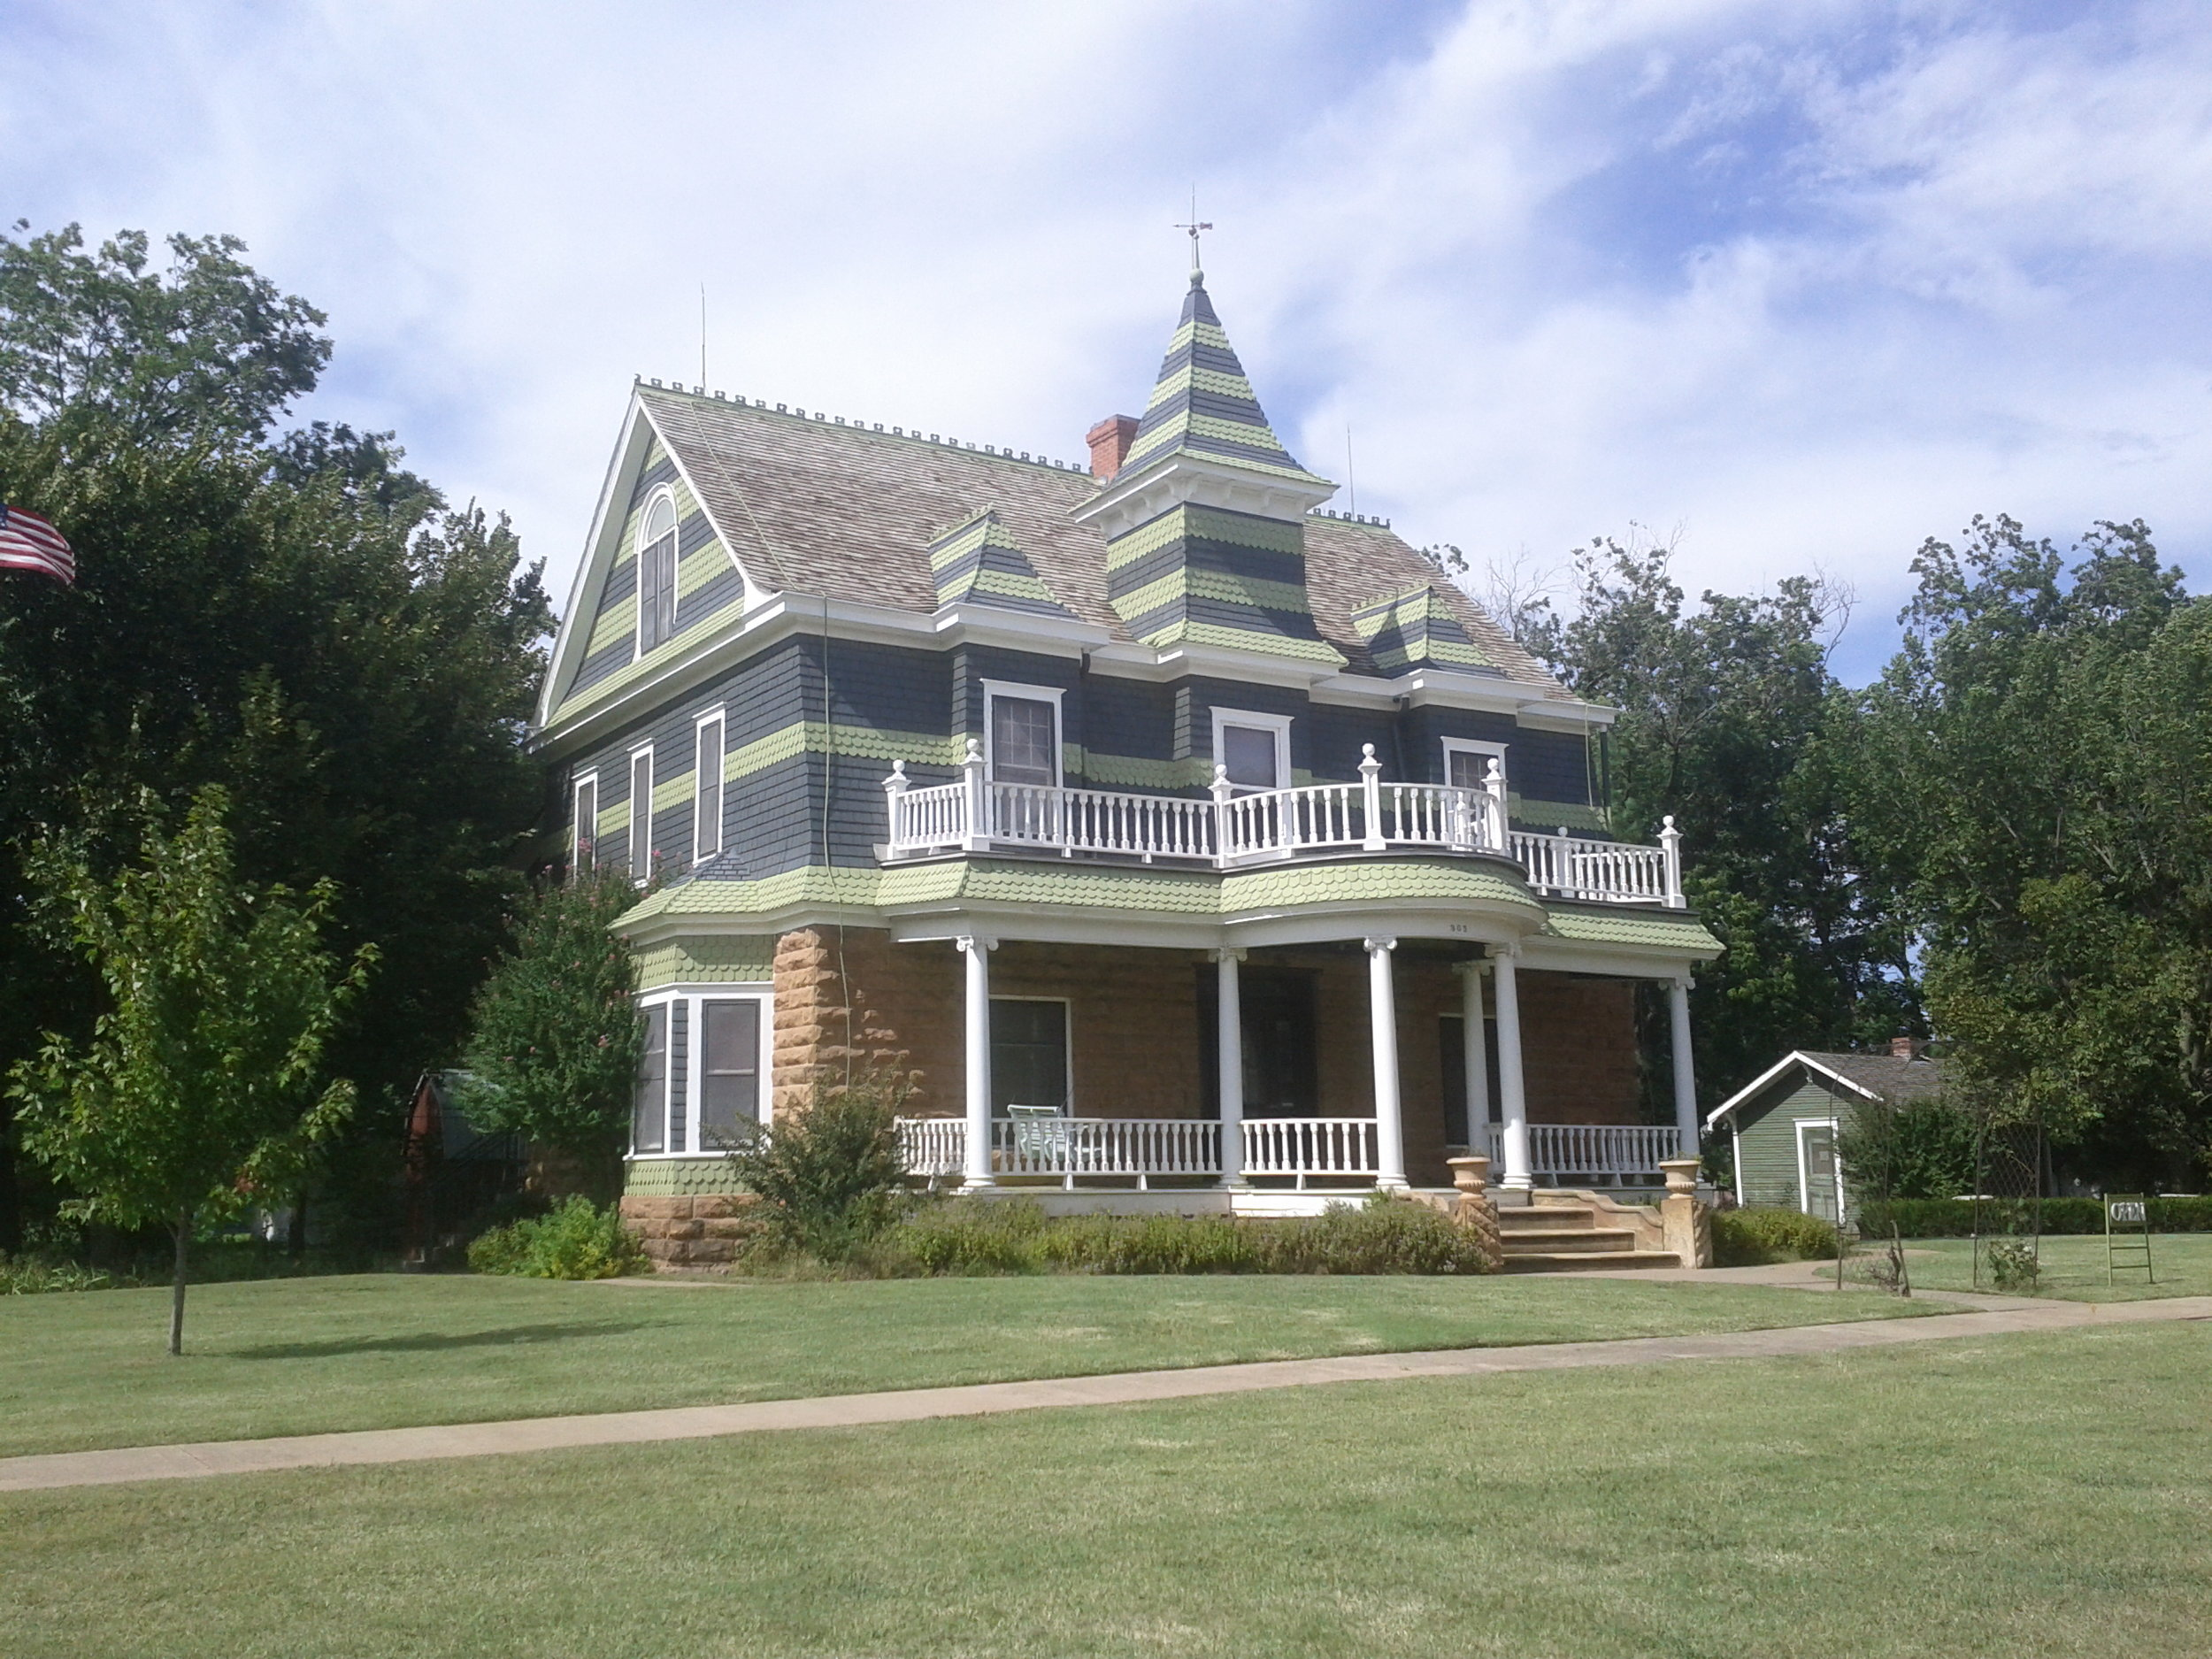 Drummond Home, Hominy   By User:Dorkmo - Own work, CC BY-SA 3.0, https://commons.wikimedia.org/w/index.php?curid=28847660